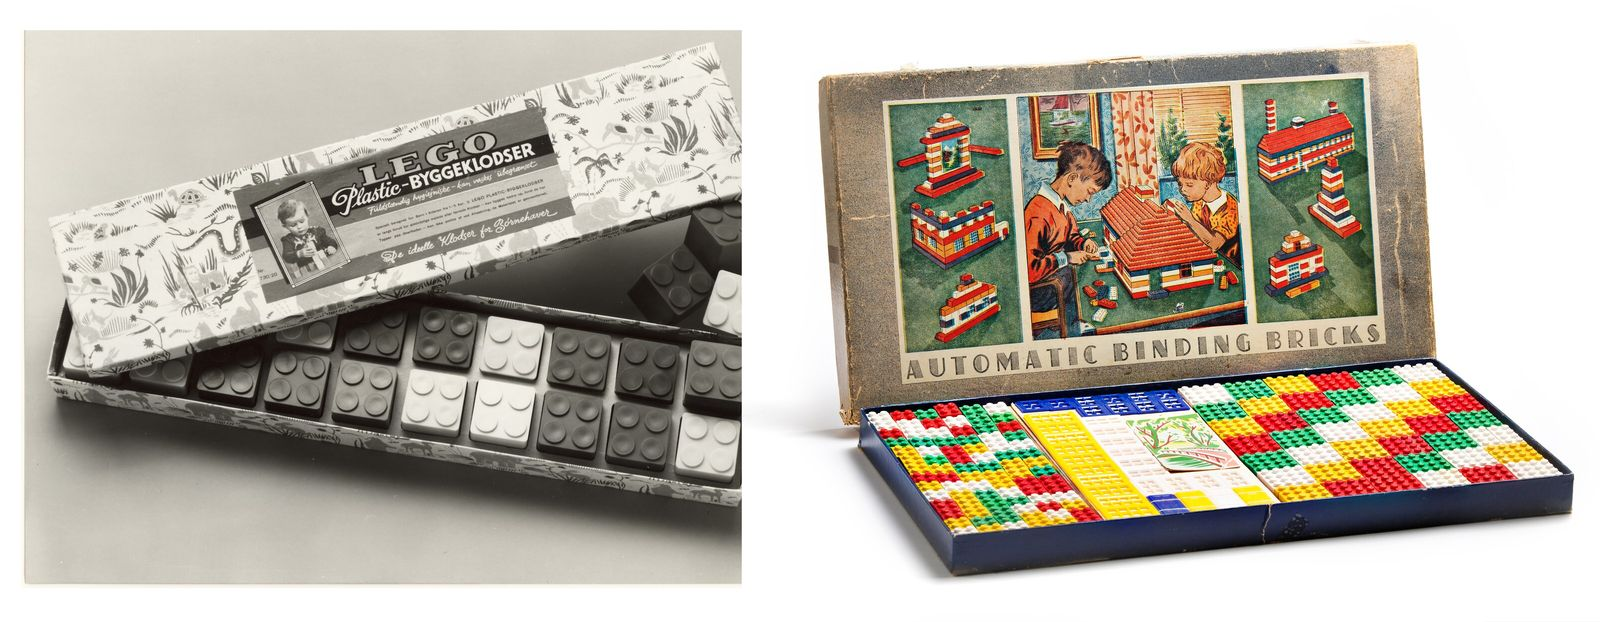 Early incarnations of LEGO included larger bricks for younger children as well as the smaller versions. ...